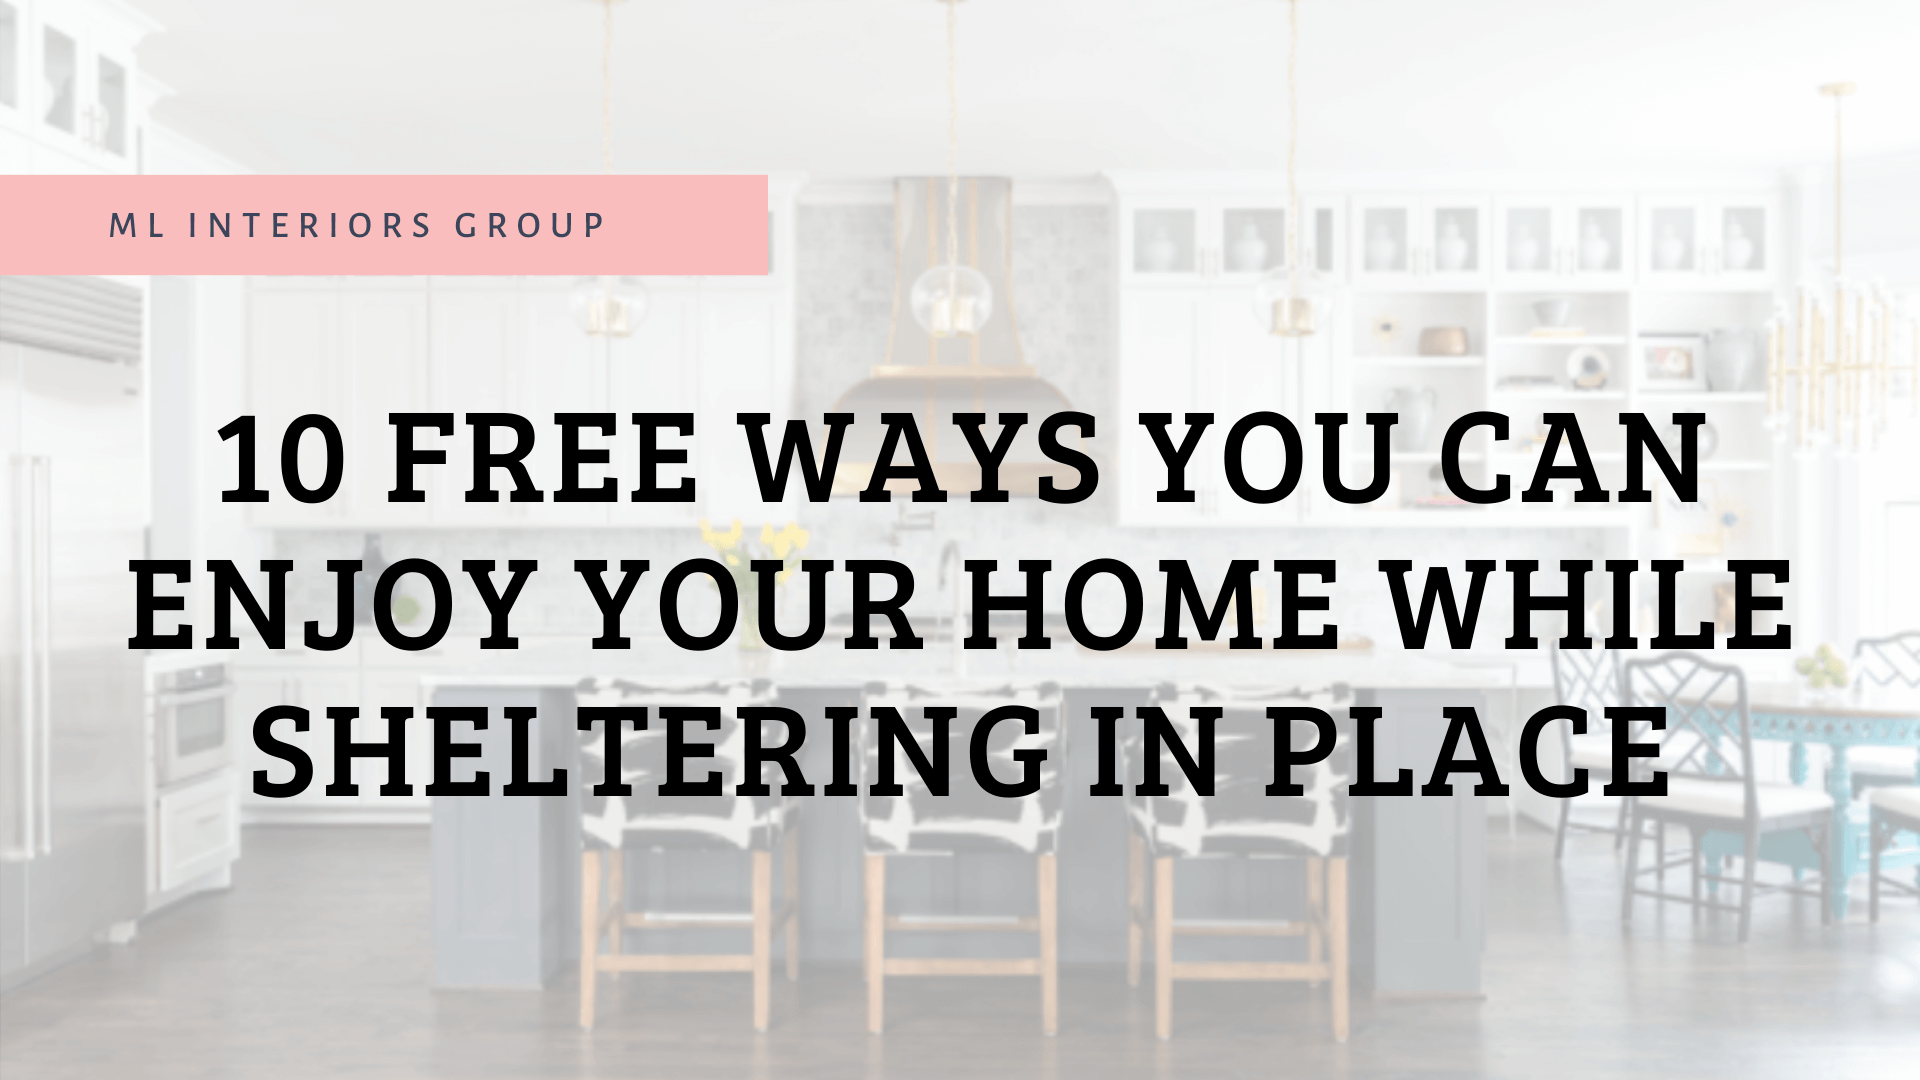 10 Free Ways You Can Enjoy Your Home While Sheltering In Place